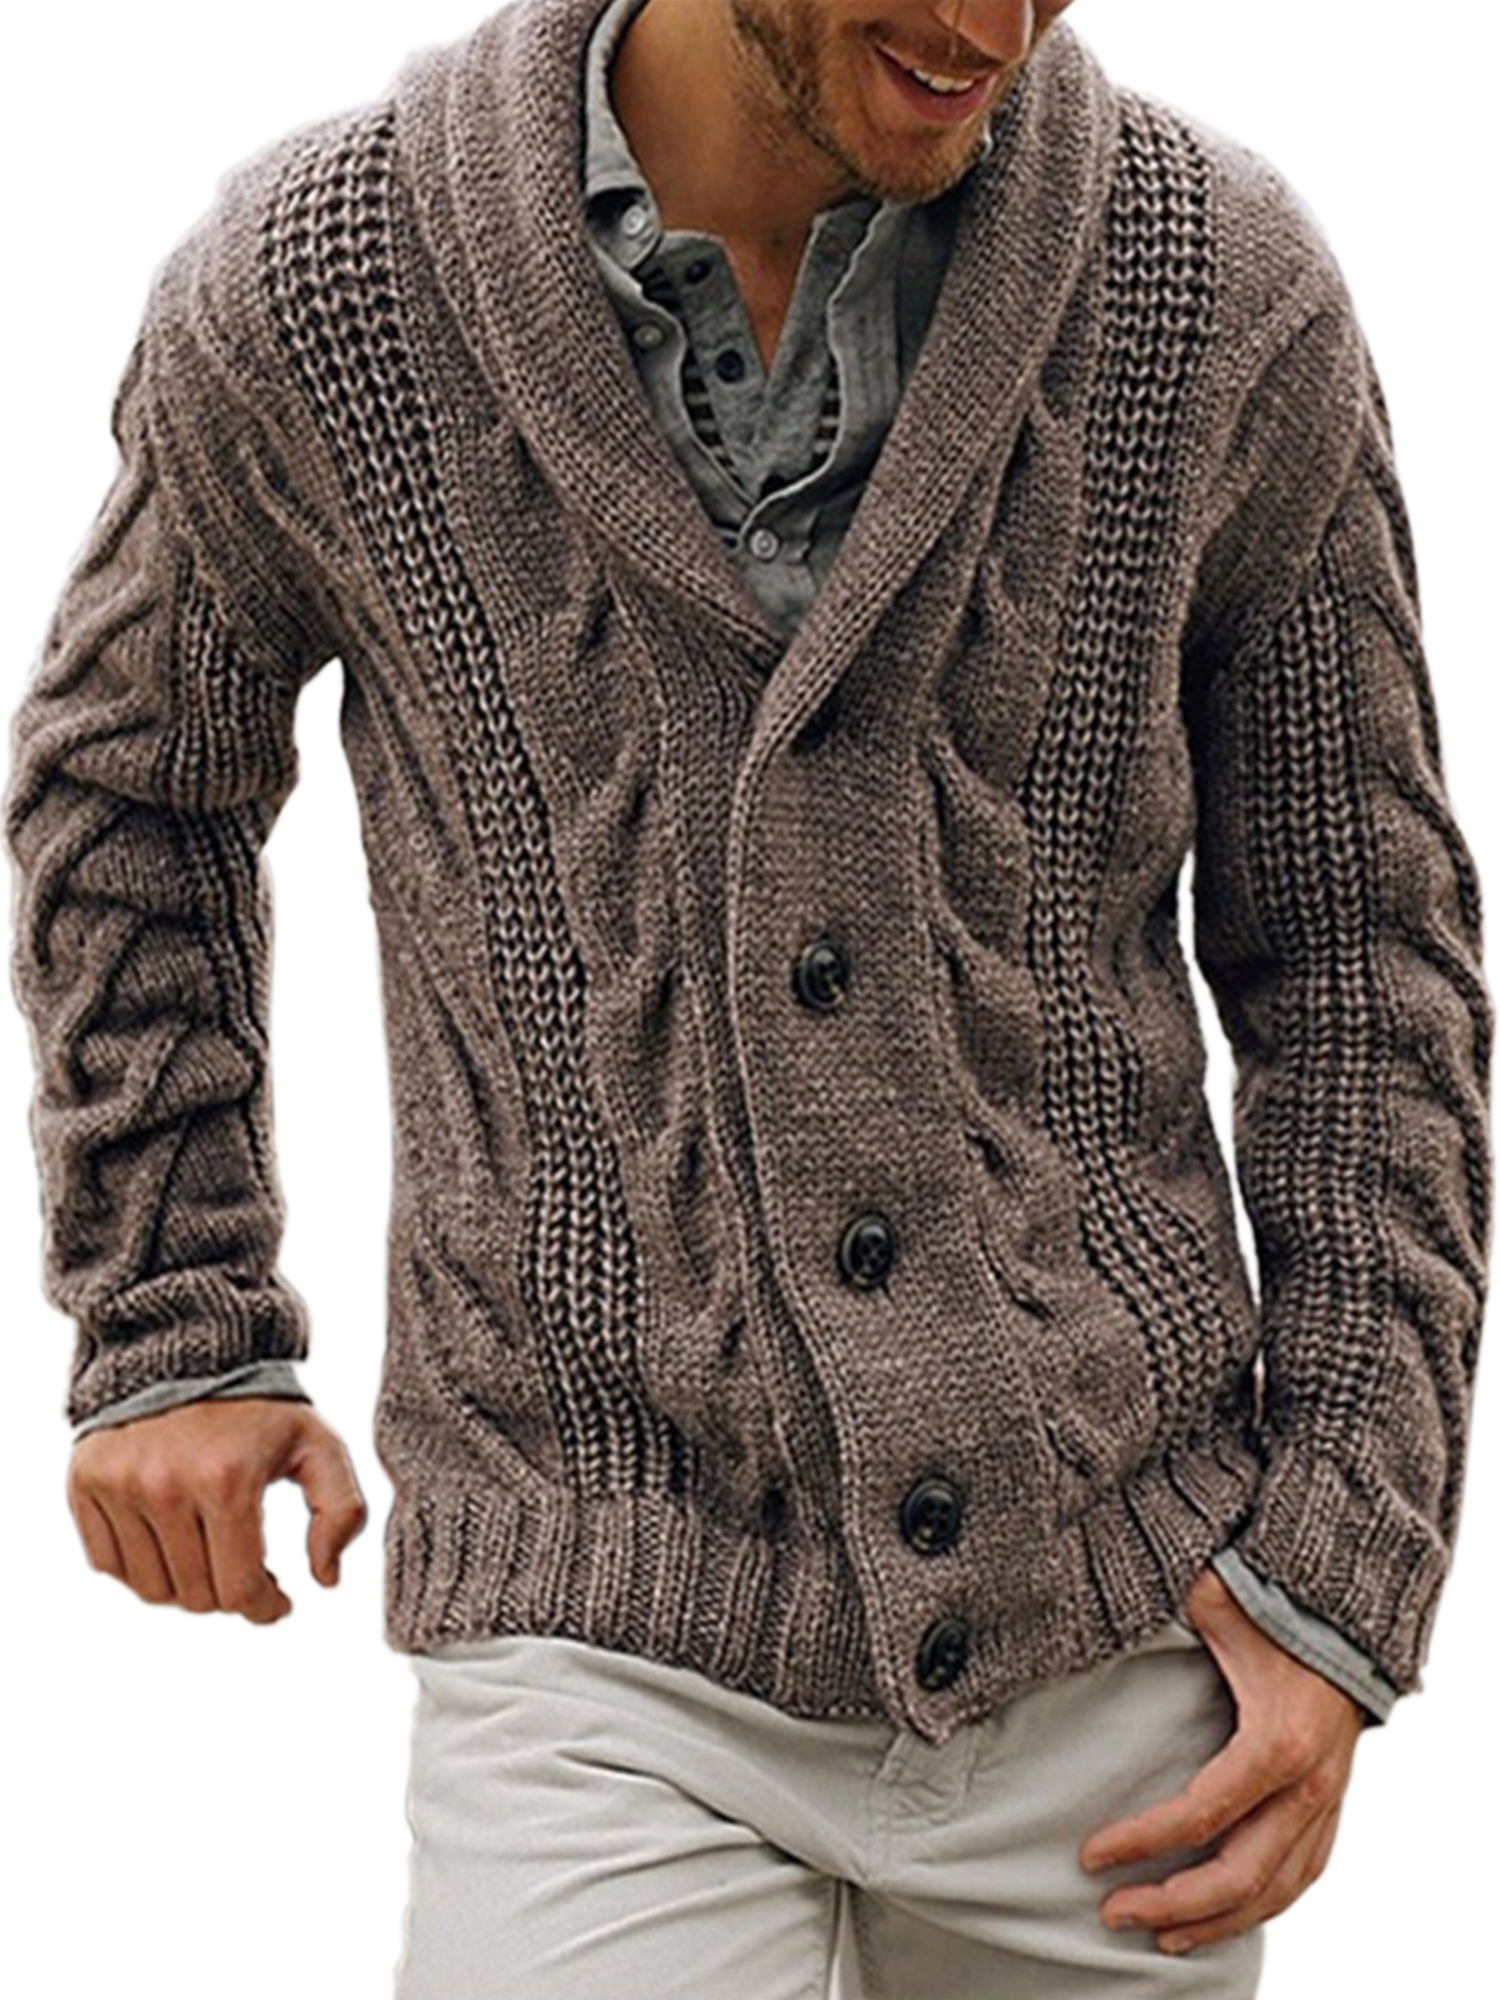 Men Cardigan Sweater Knitted Jumper Coat Casual Buttons Solid Color Jacket Tops